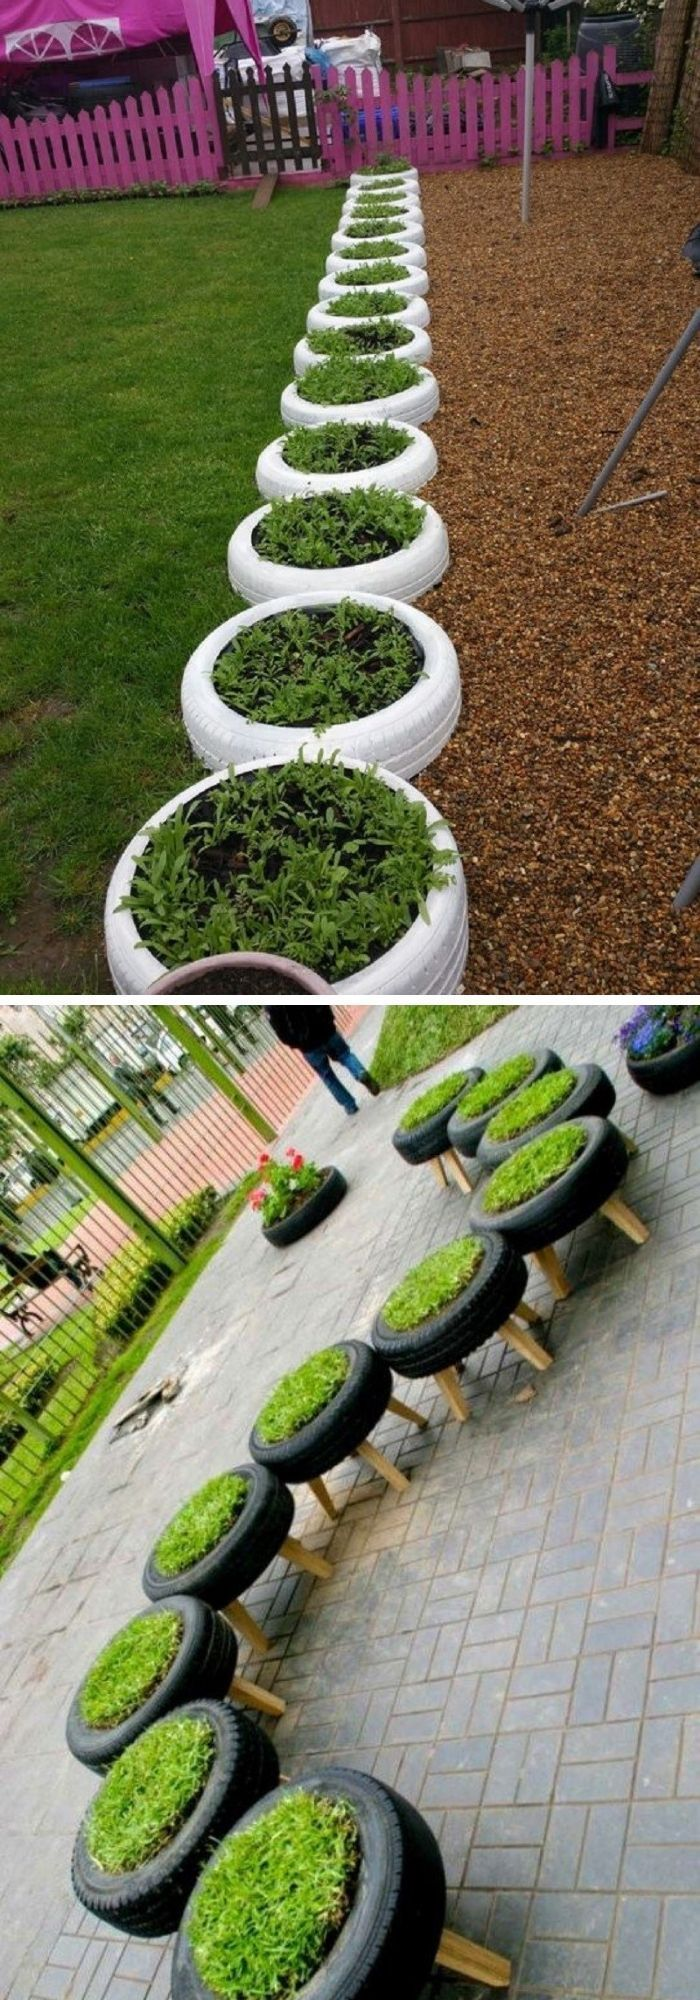 20+ Best DIY Tire Planter Flower Pot Ideas & Projects For 2020